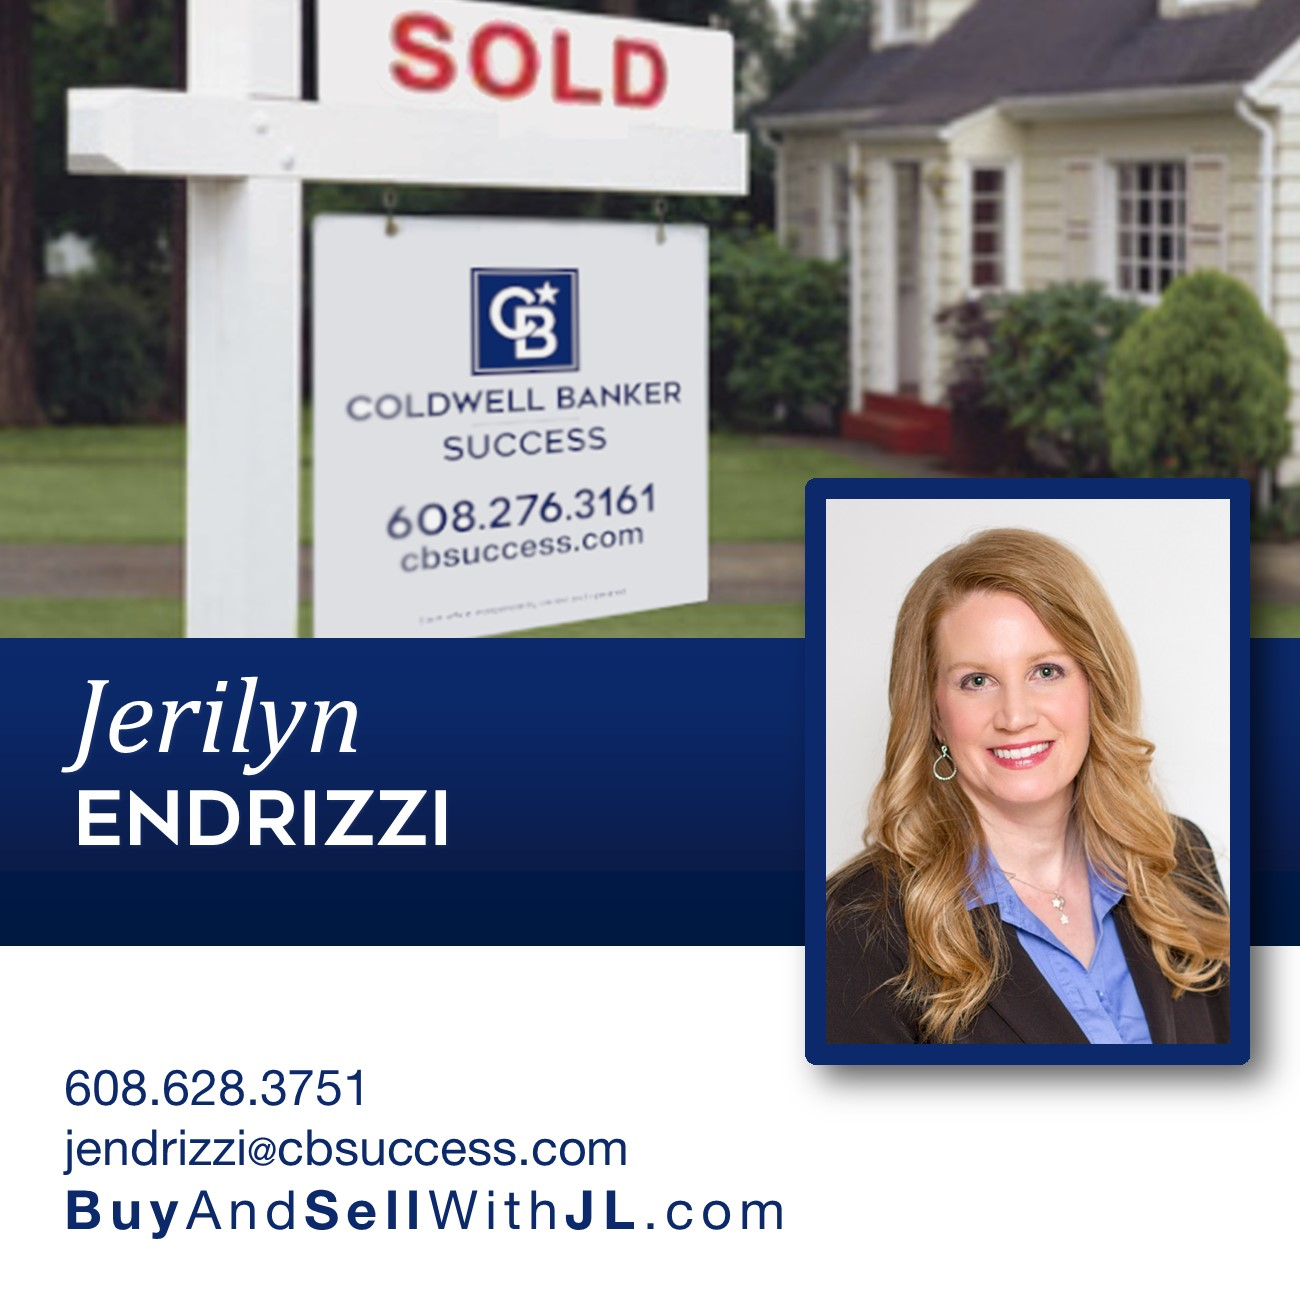 We Loved Working With Jerilyn